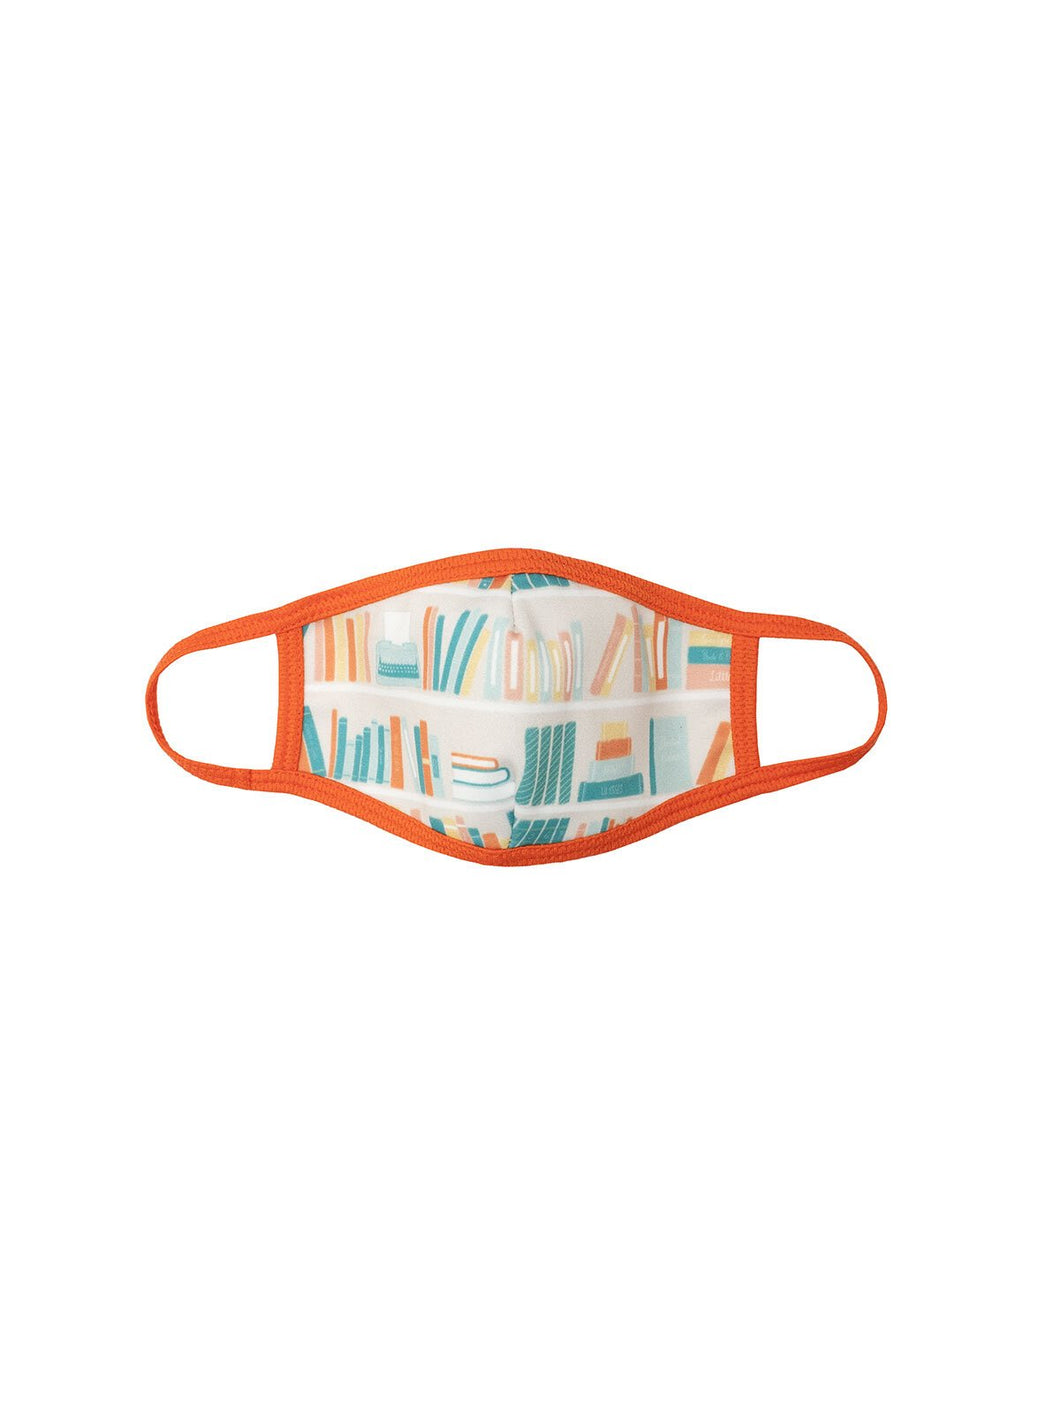 Bookshelf face mask